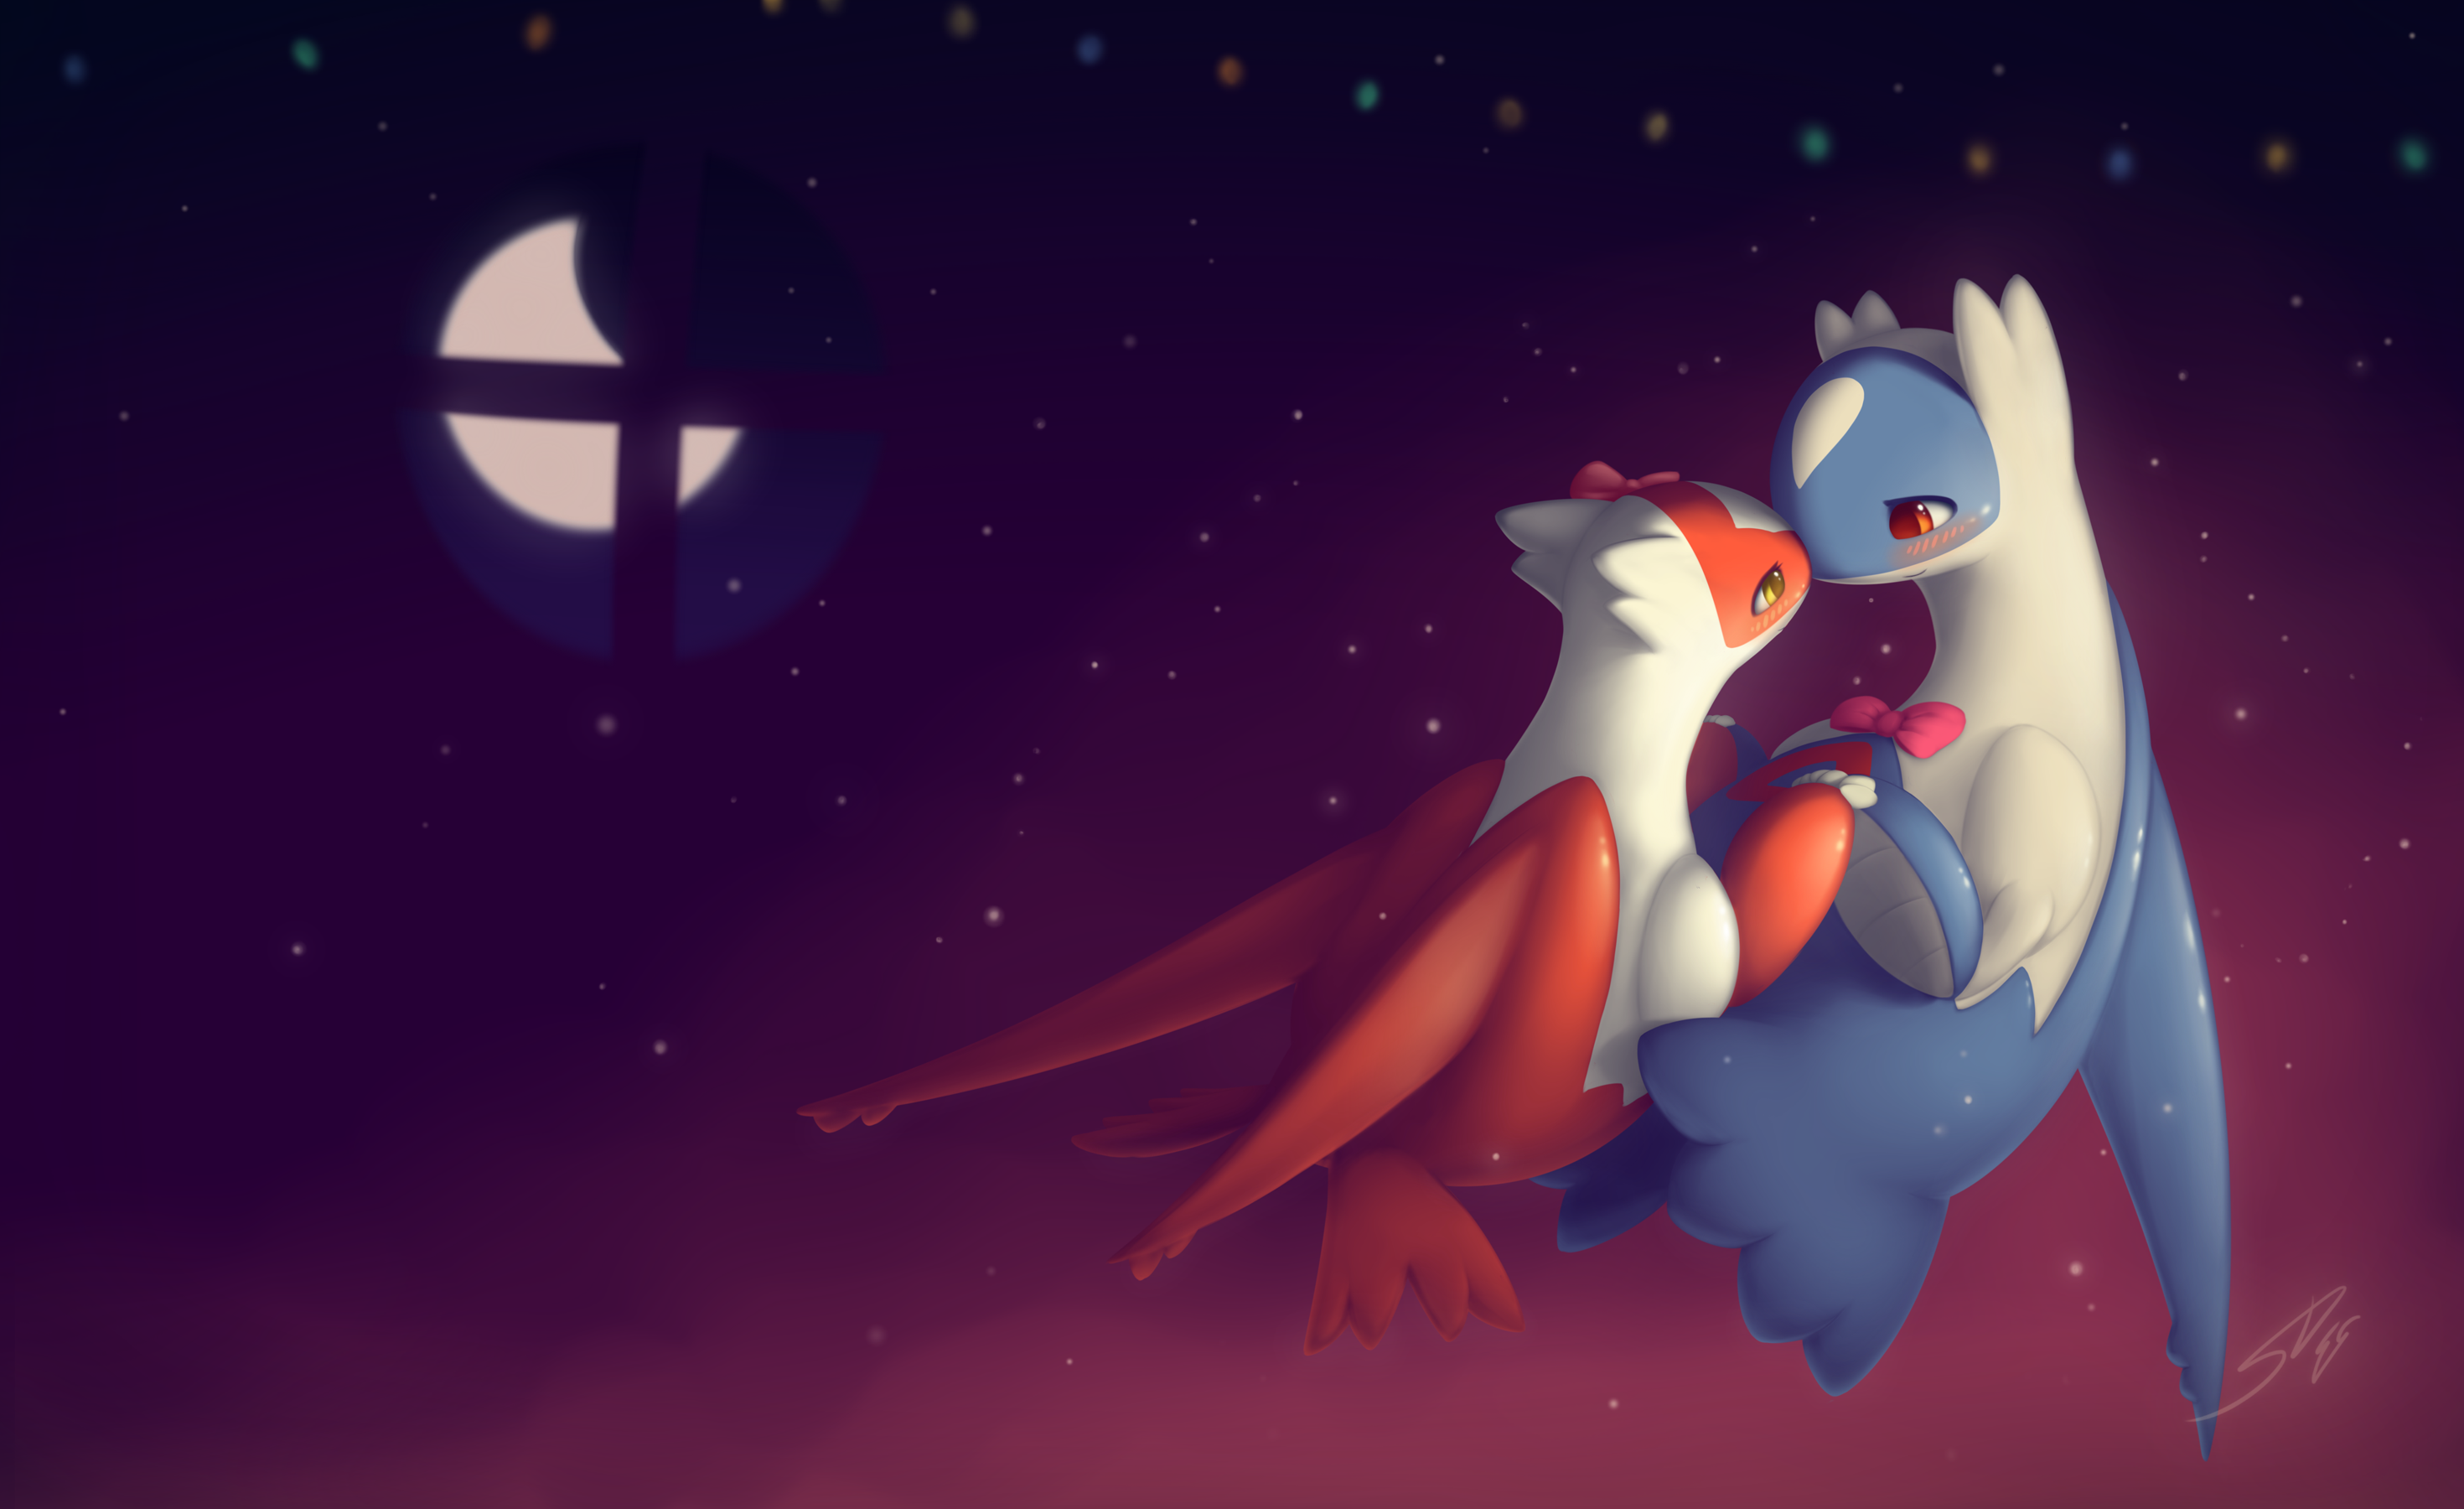 latios and latias kiss - photo #17